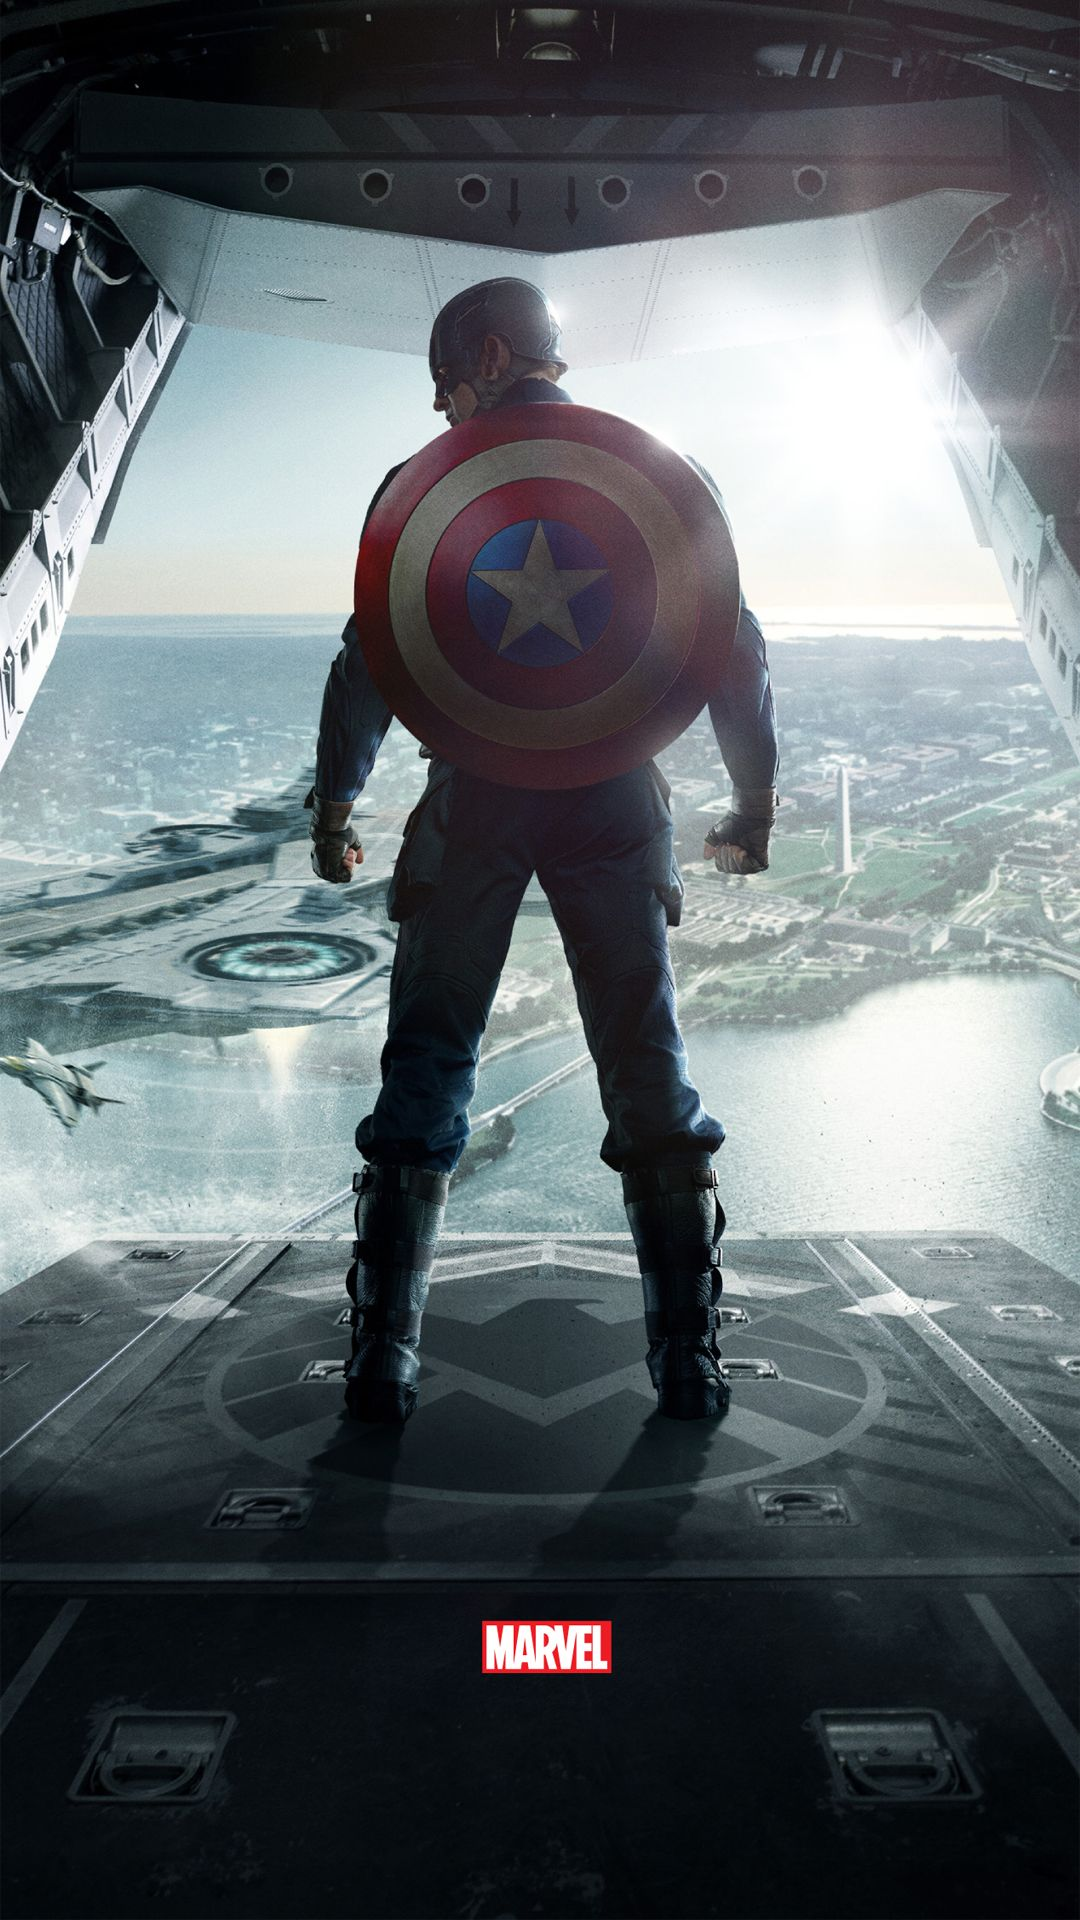 Captain America The Winter Soldier htc one wallpaper Marvel 1080x1920